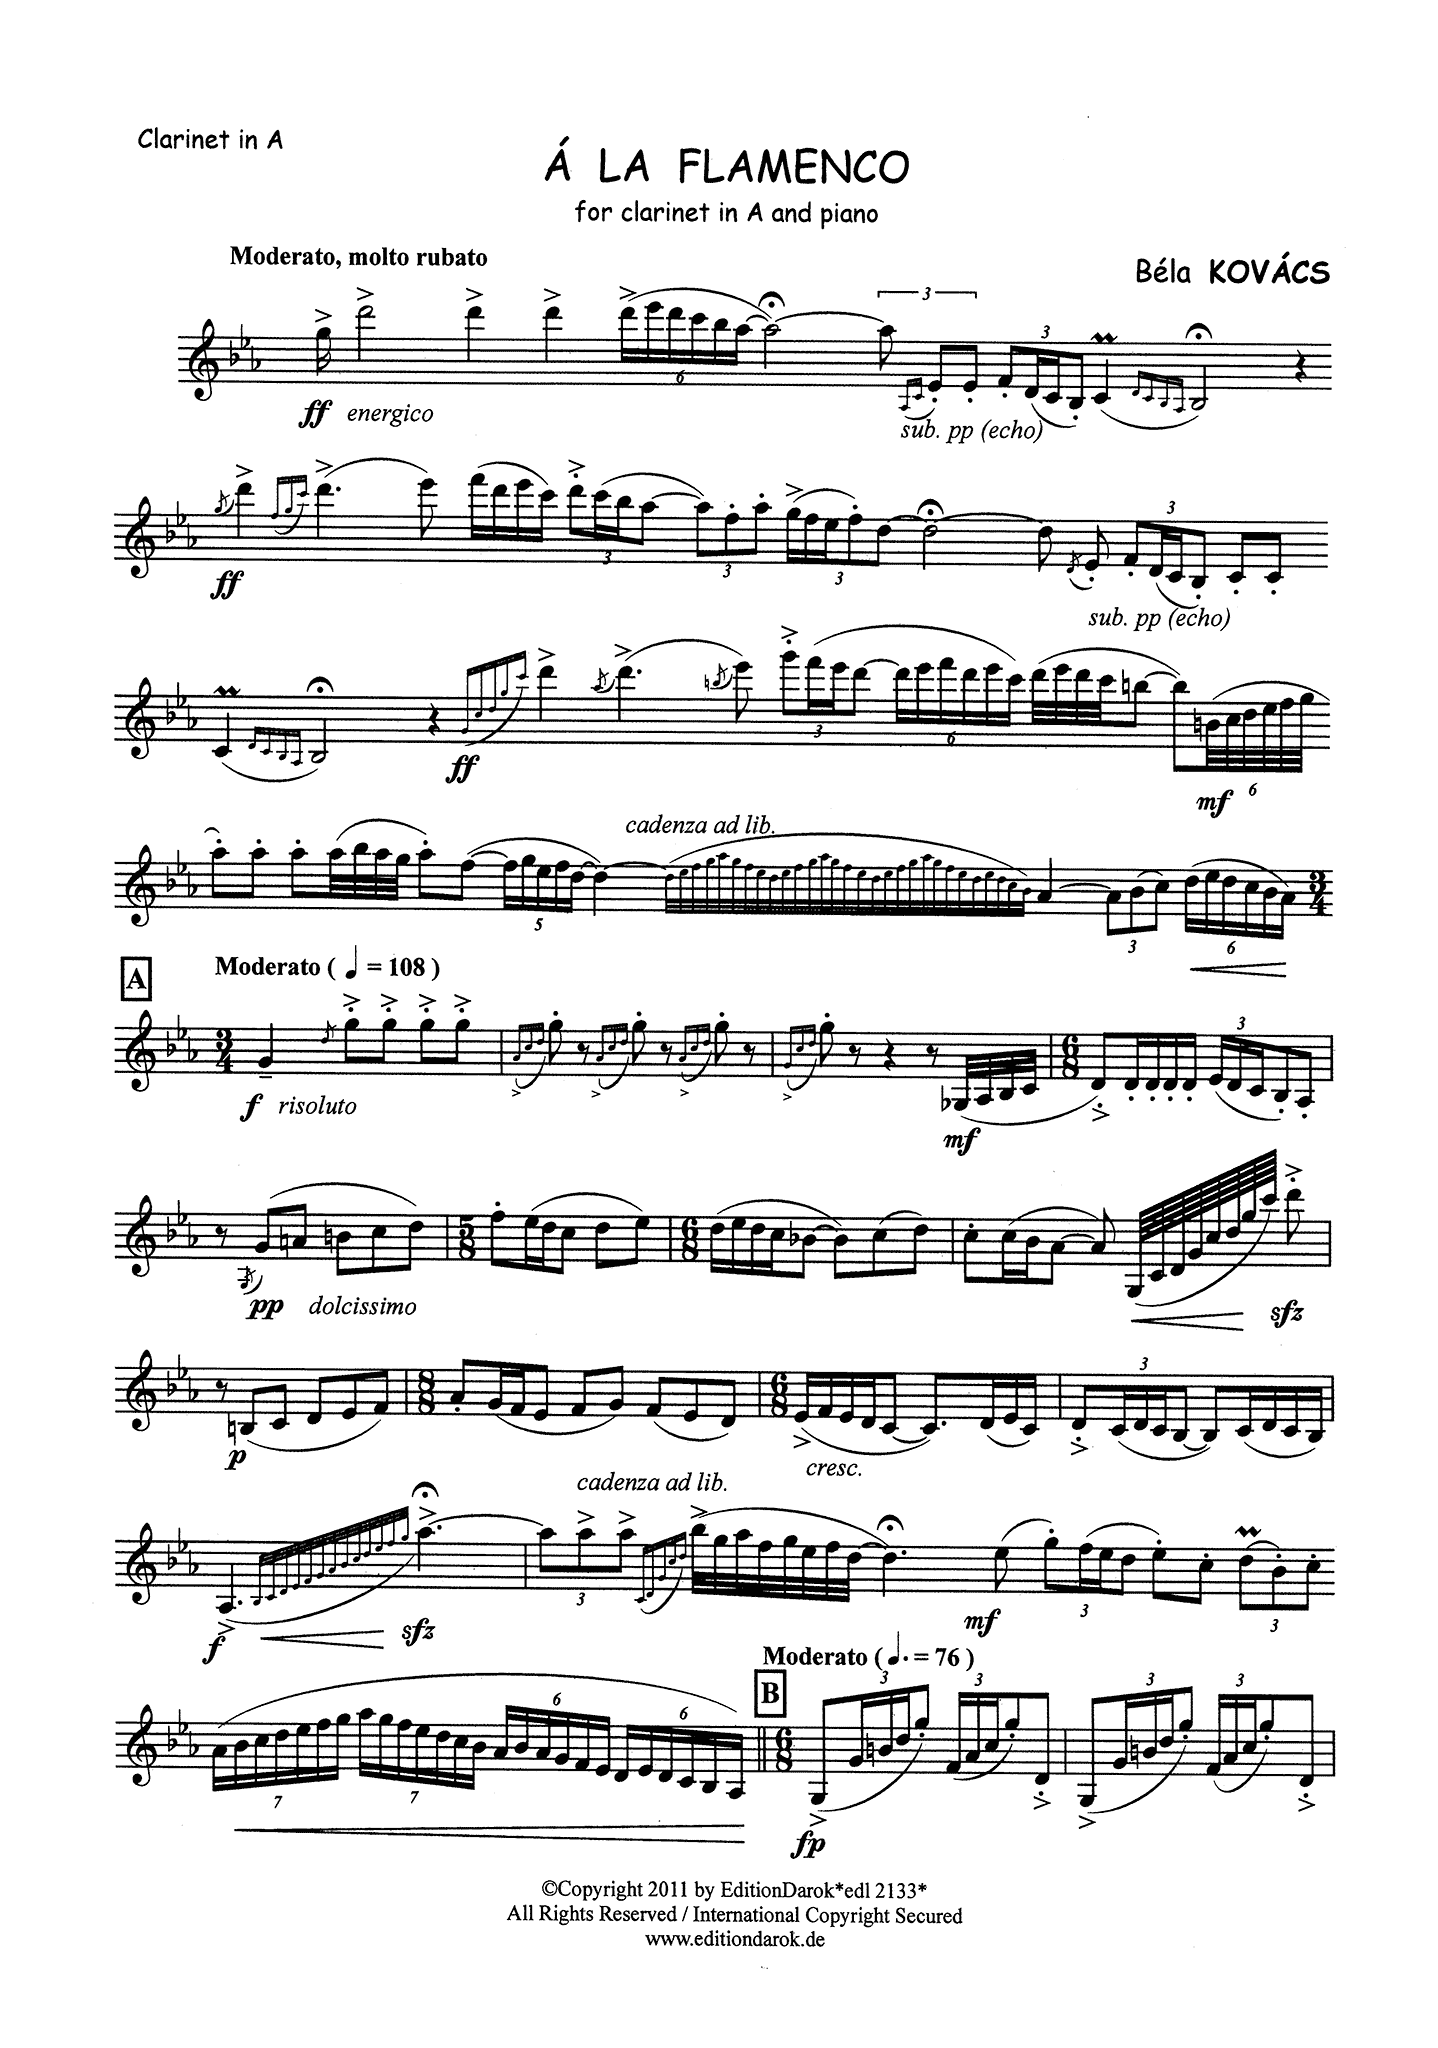 Kovács à la Flamenco Clarinet part